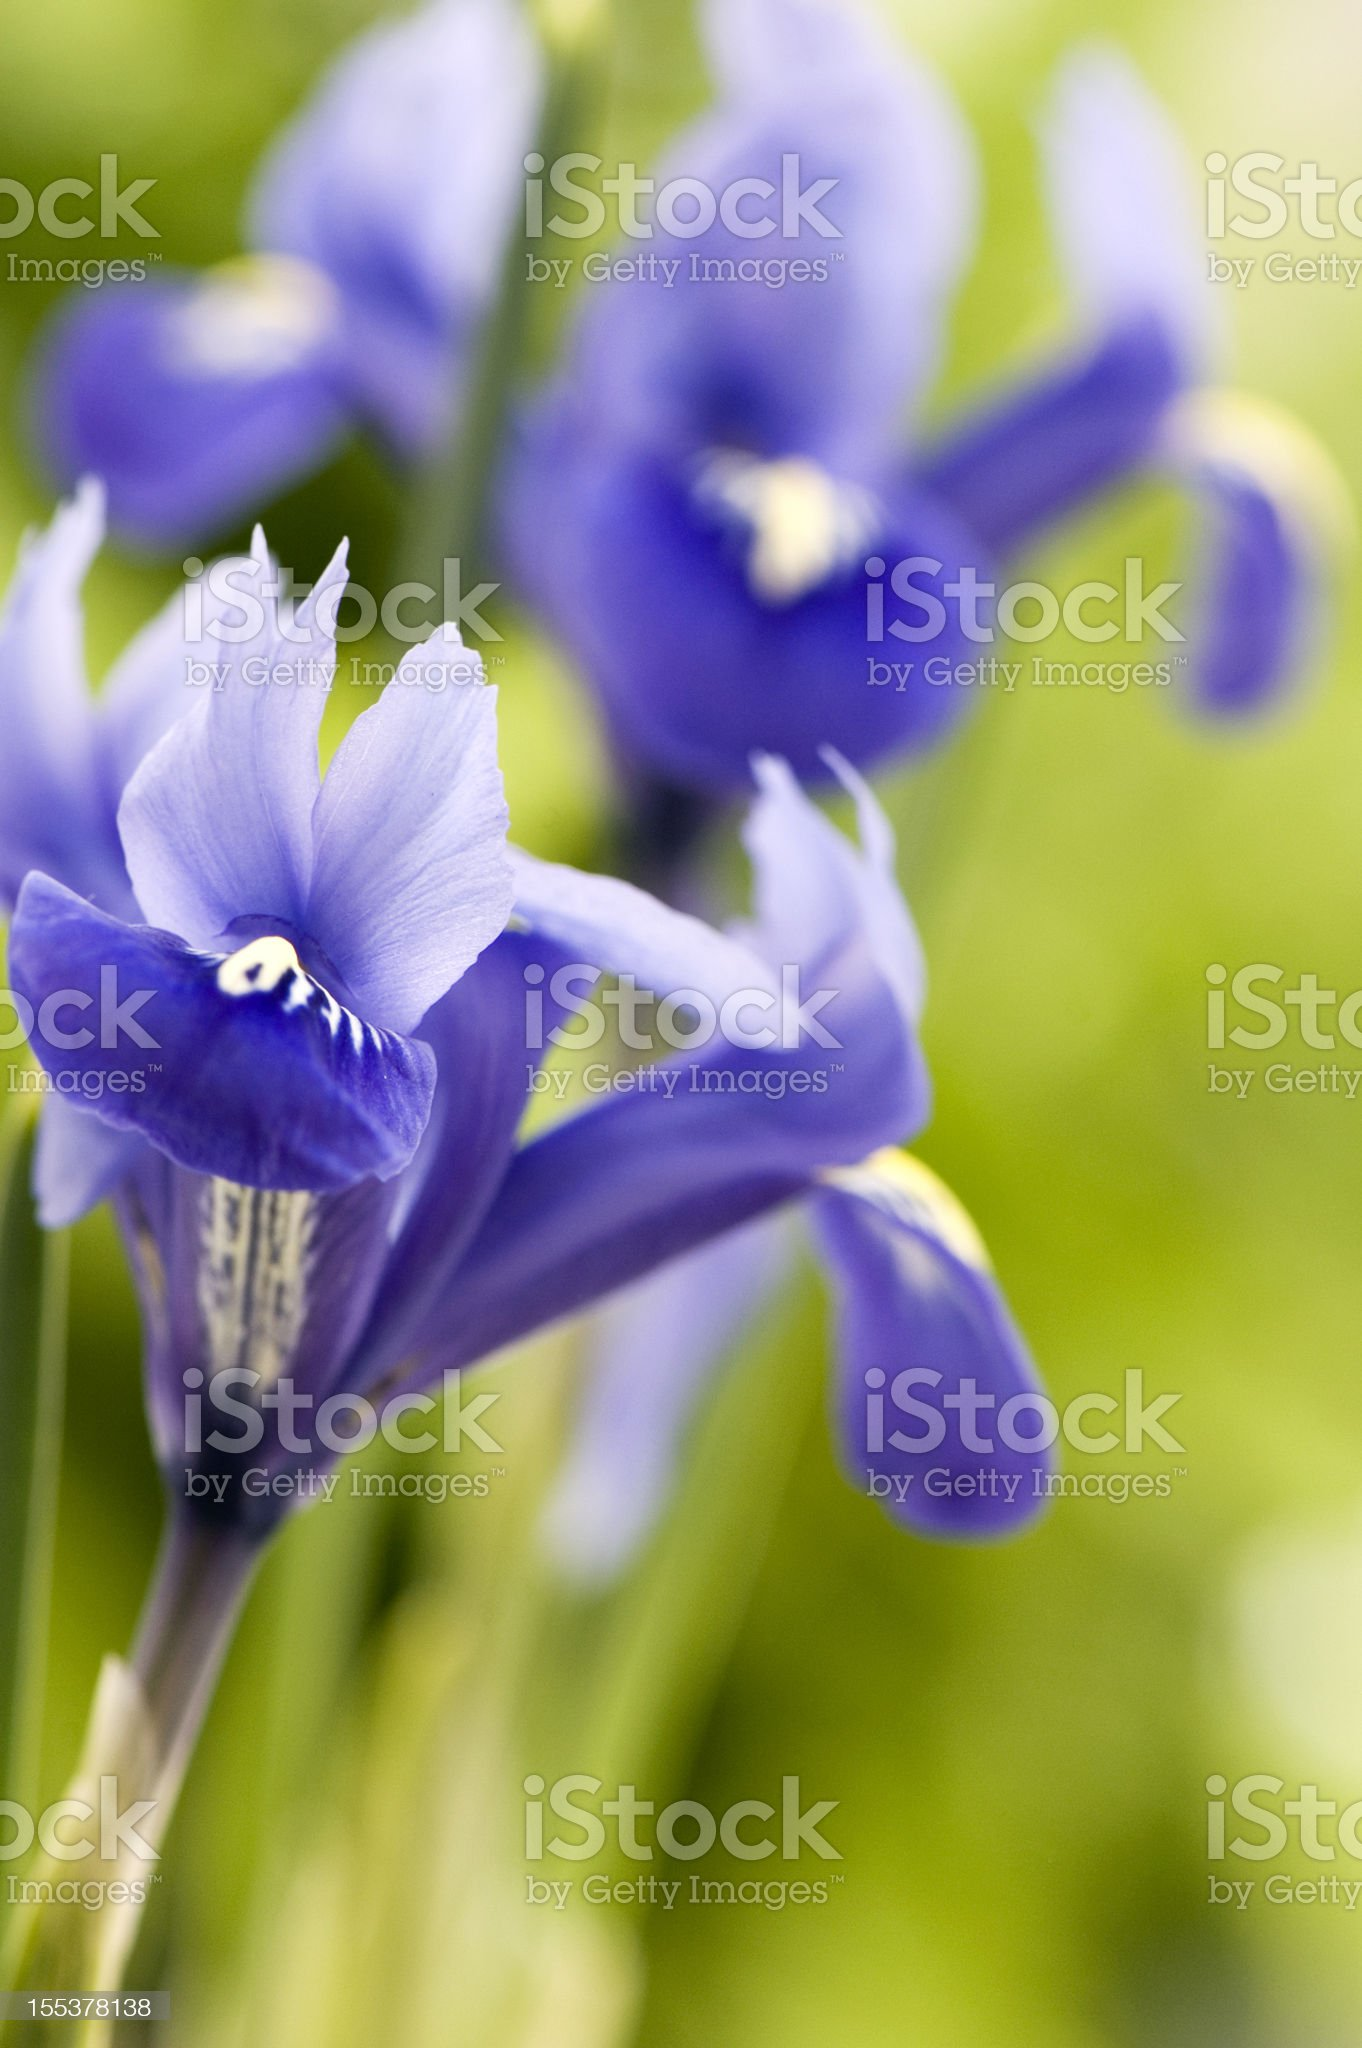 Blue Iris royalty-free stock photo